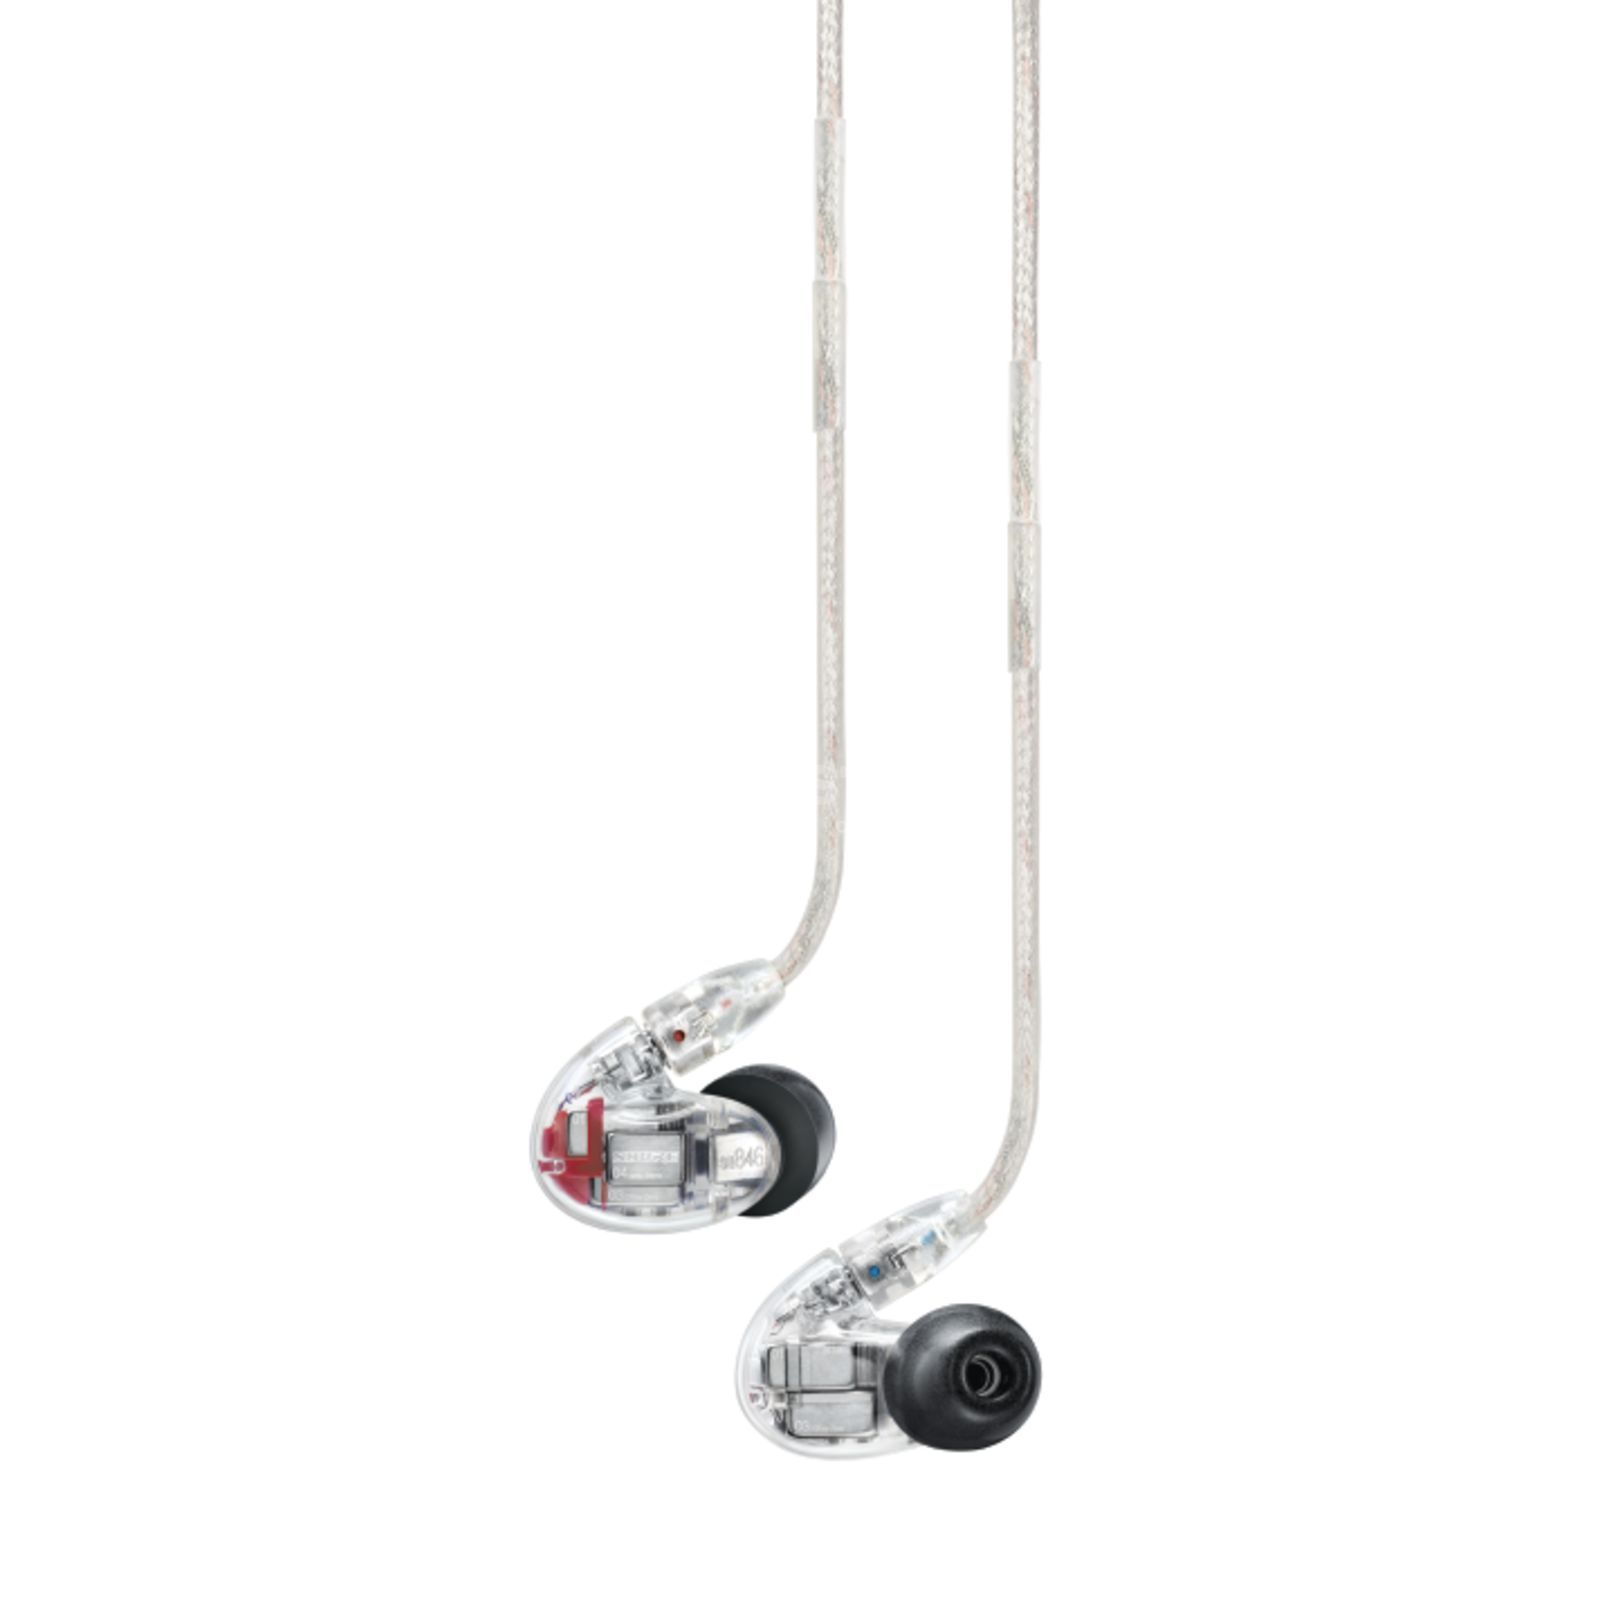 Shure SE 846 Sound isolating earphones Produktbillede